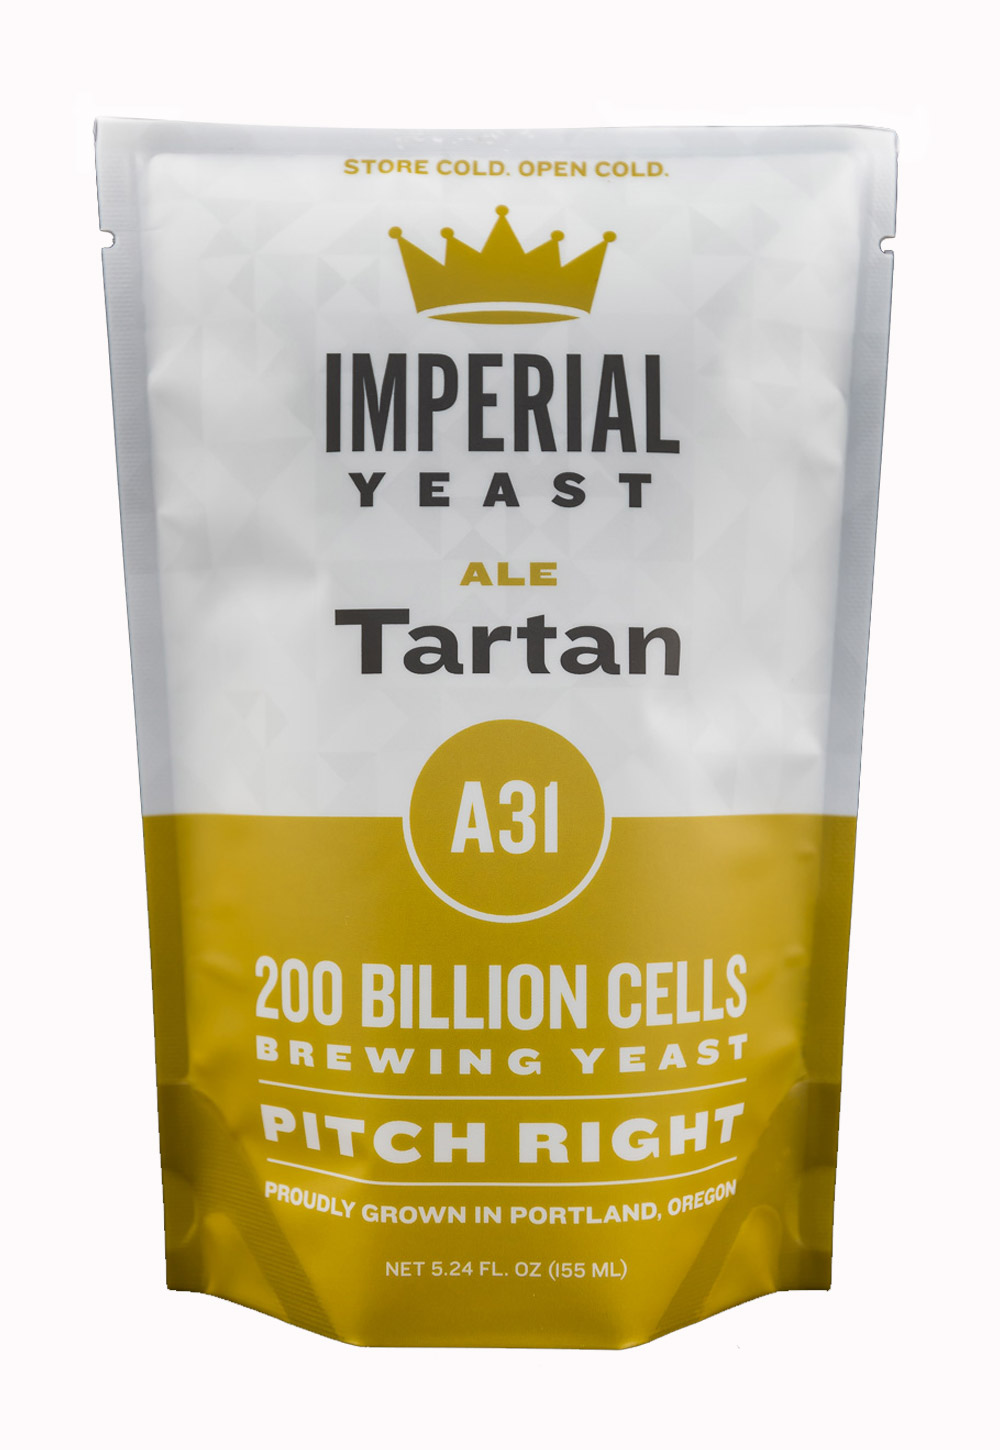 A31 Tartan Ale Yeast from Imperial Yeast